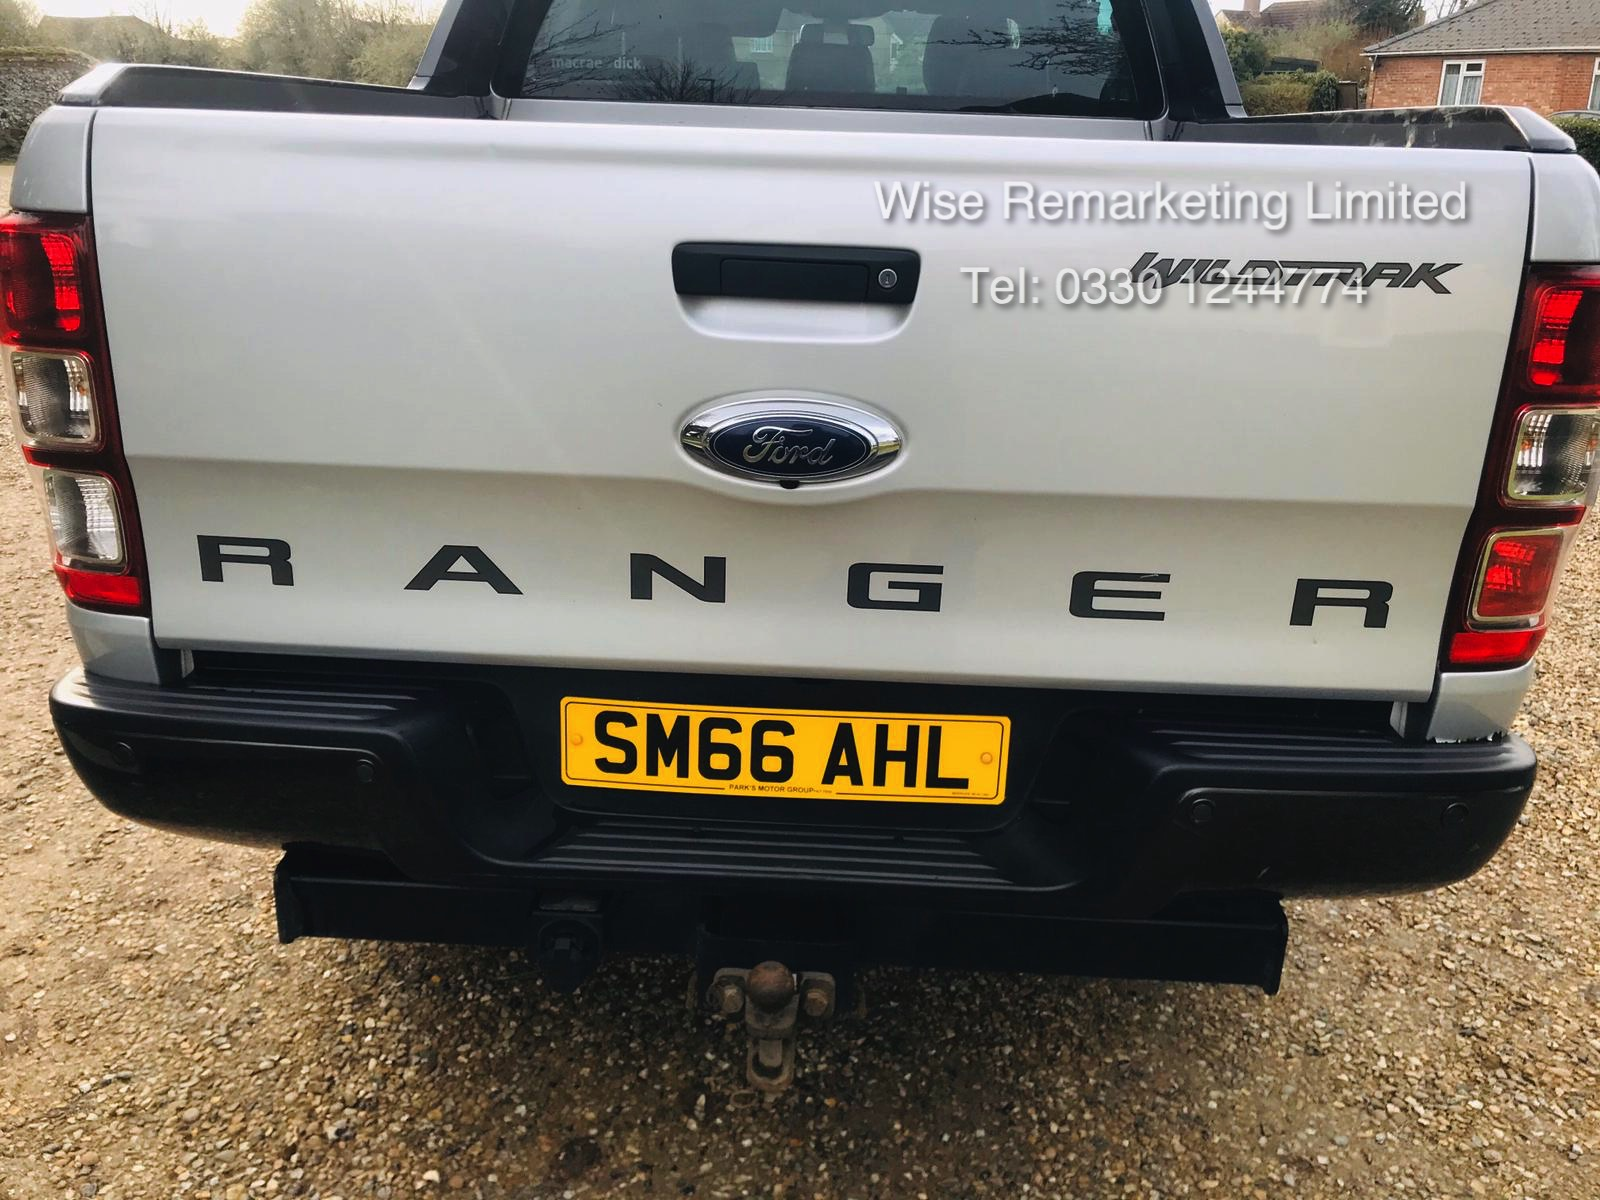 Ford Ranger 3.2 TDCI WILDTRAK - Auto - 2017 Model - 1 Former Keeper - 4x4 - TOP OF THE RANGE - Image 7 of 16